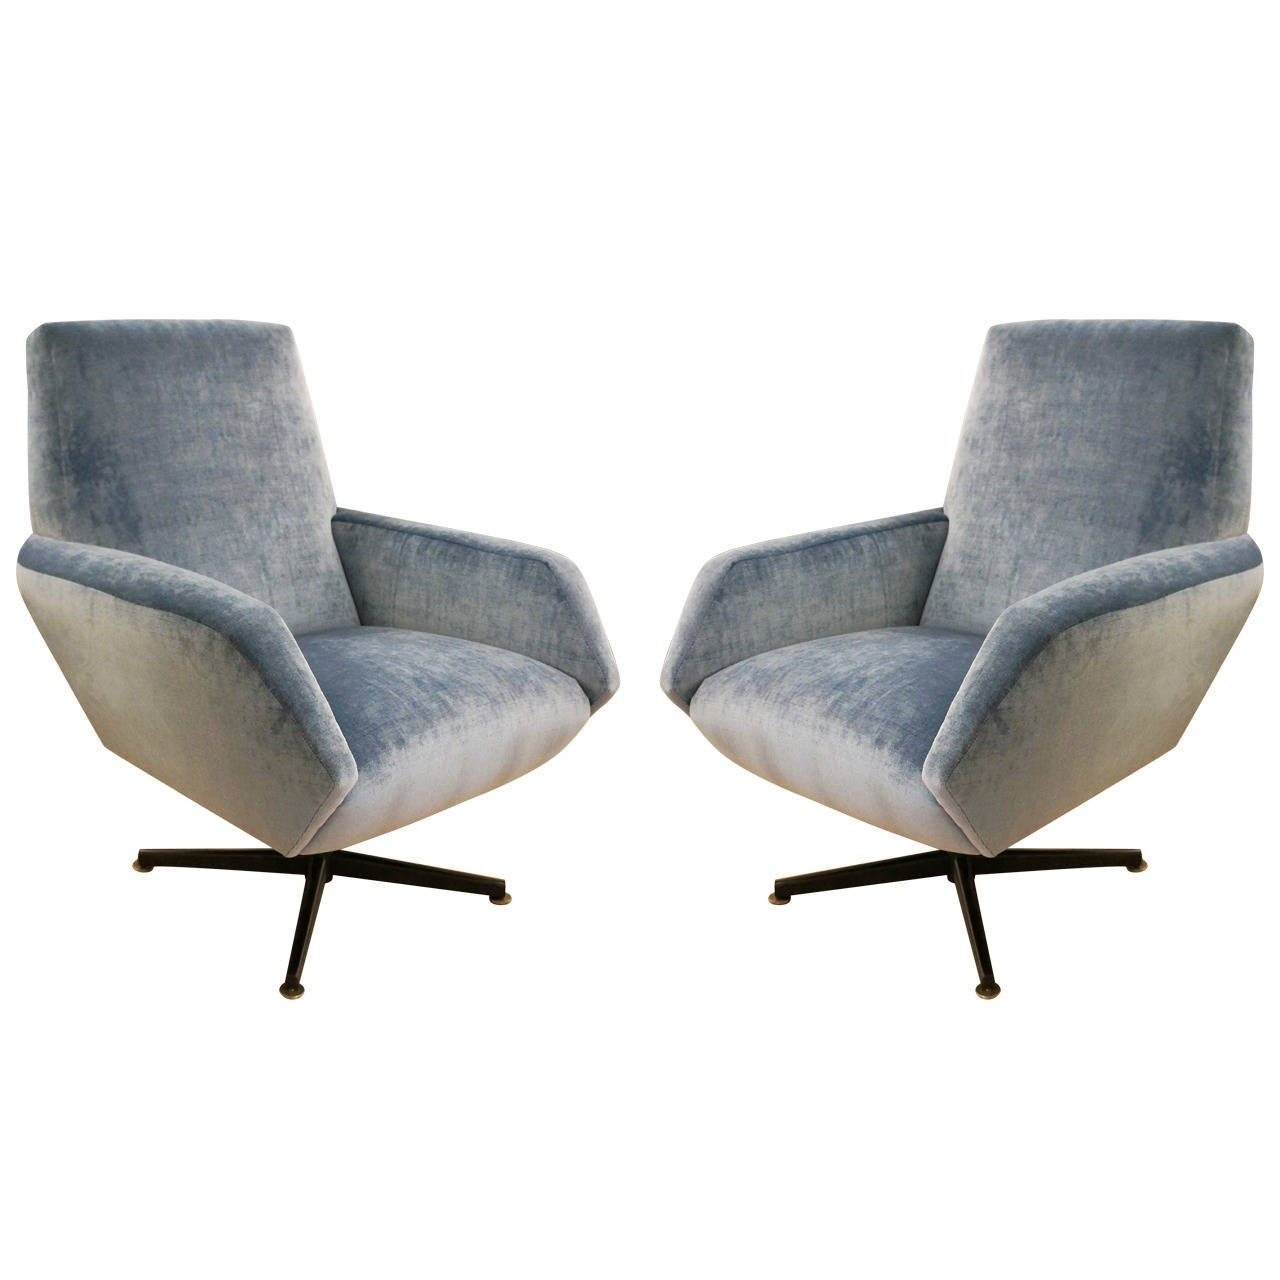 Category armchairs and lounge chairs - Italian Mid Century Swivel Lounge Chairs At 1stdibs